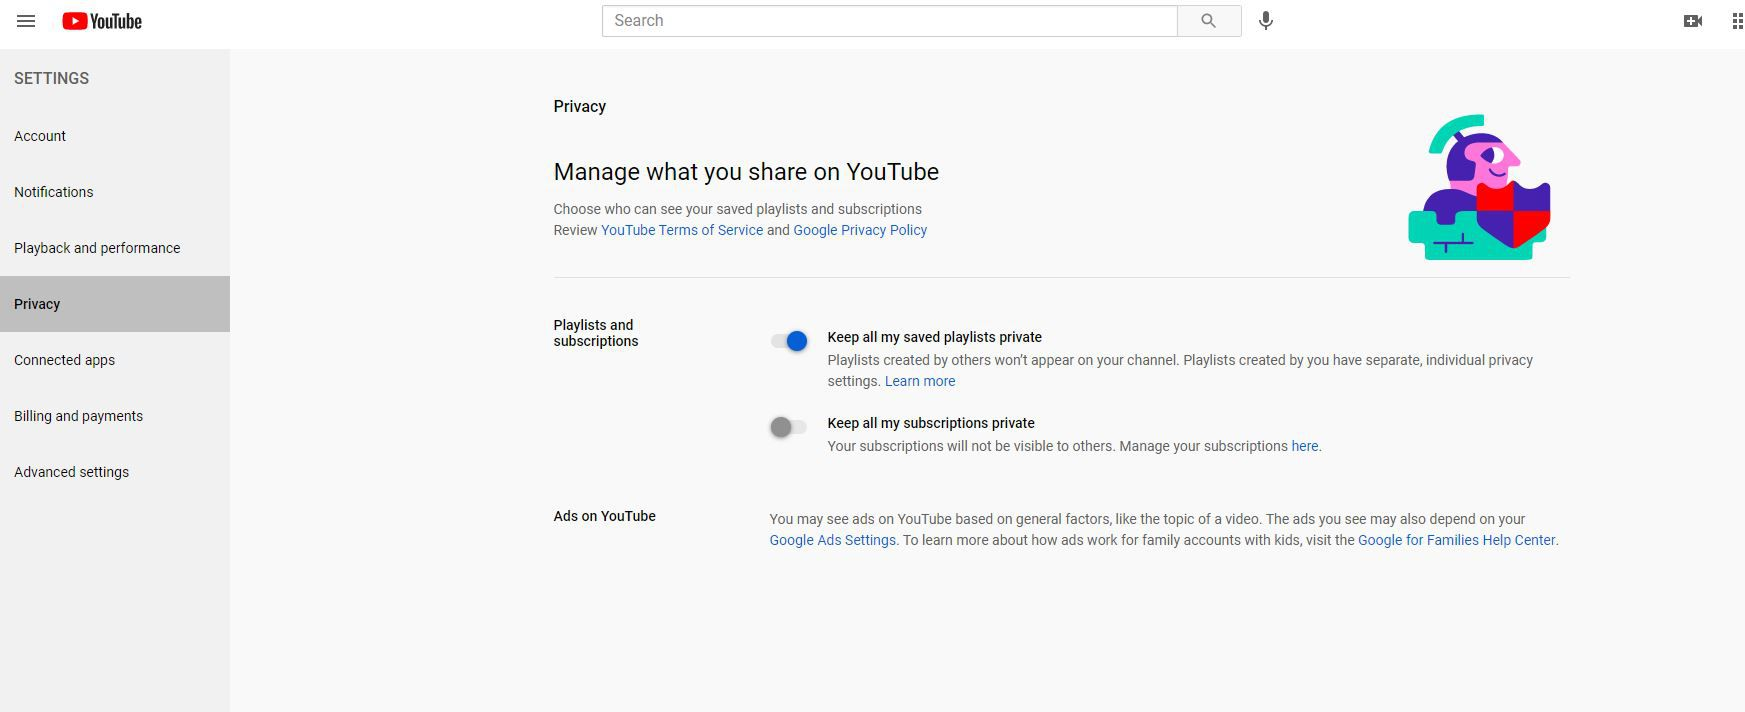 Manage what you share on YouTube